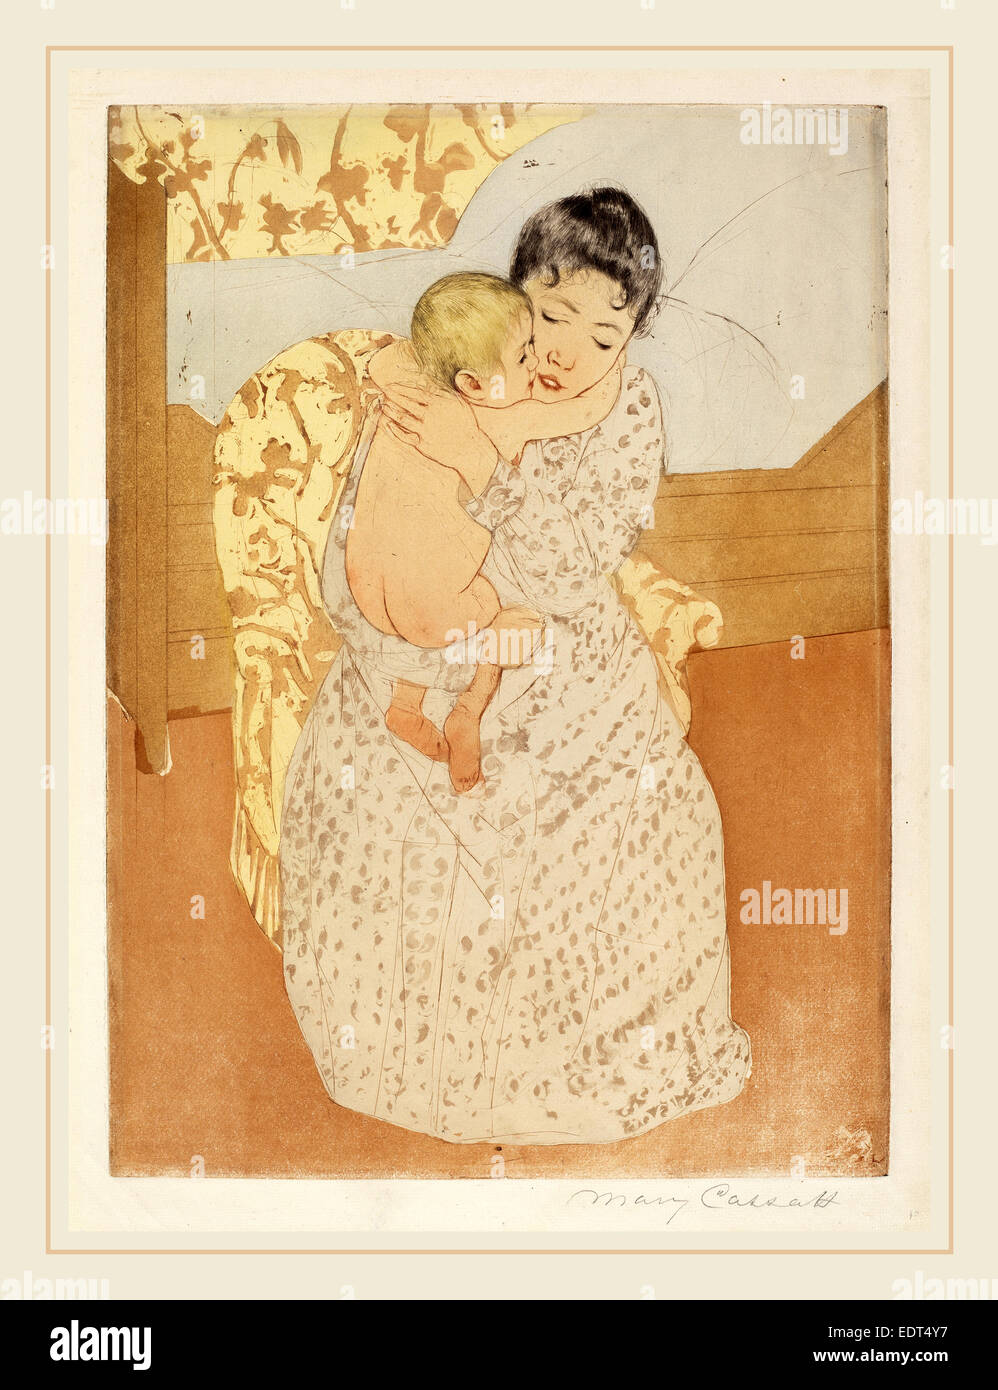 Mary Cassatt, Maternal Caress, American, 1844-1926, c. 1891, color drypoint and soft-ground etching on cream wove - Stock Image